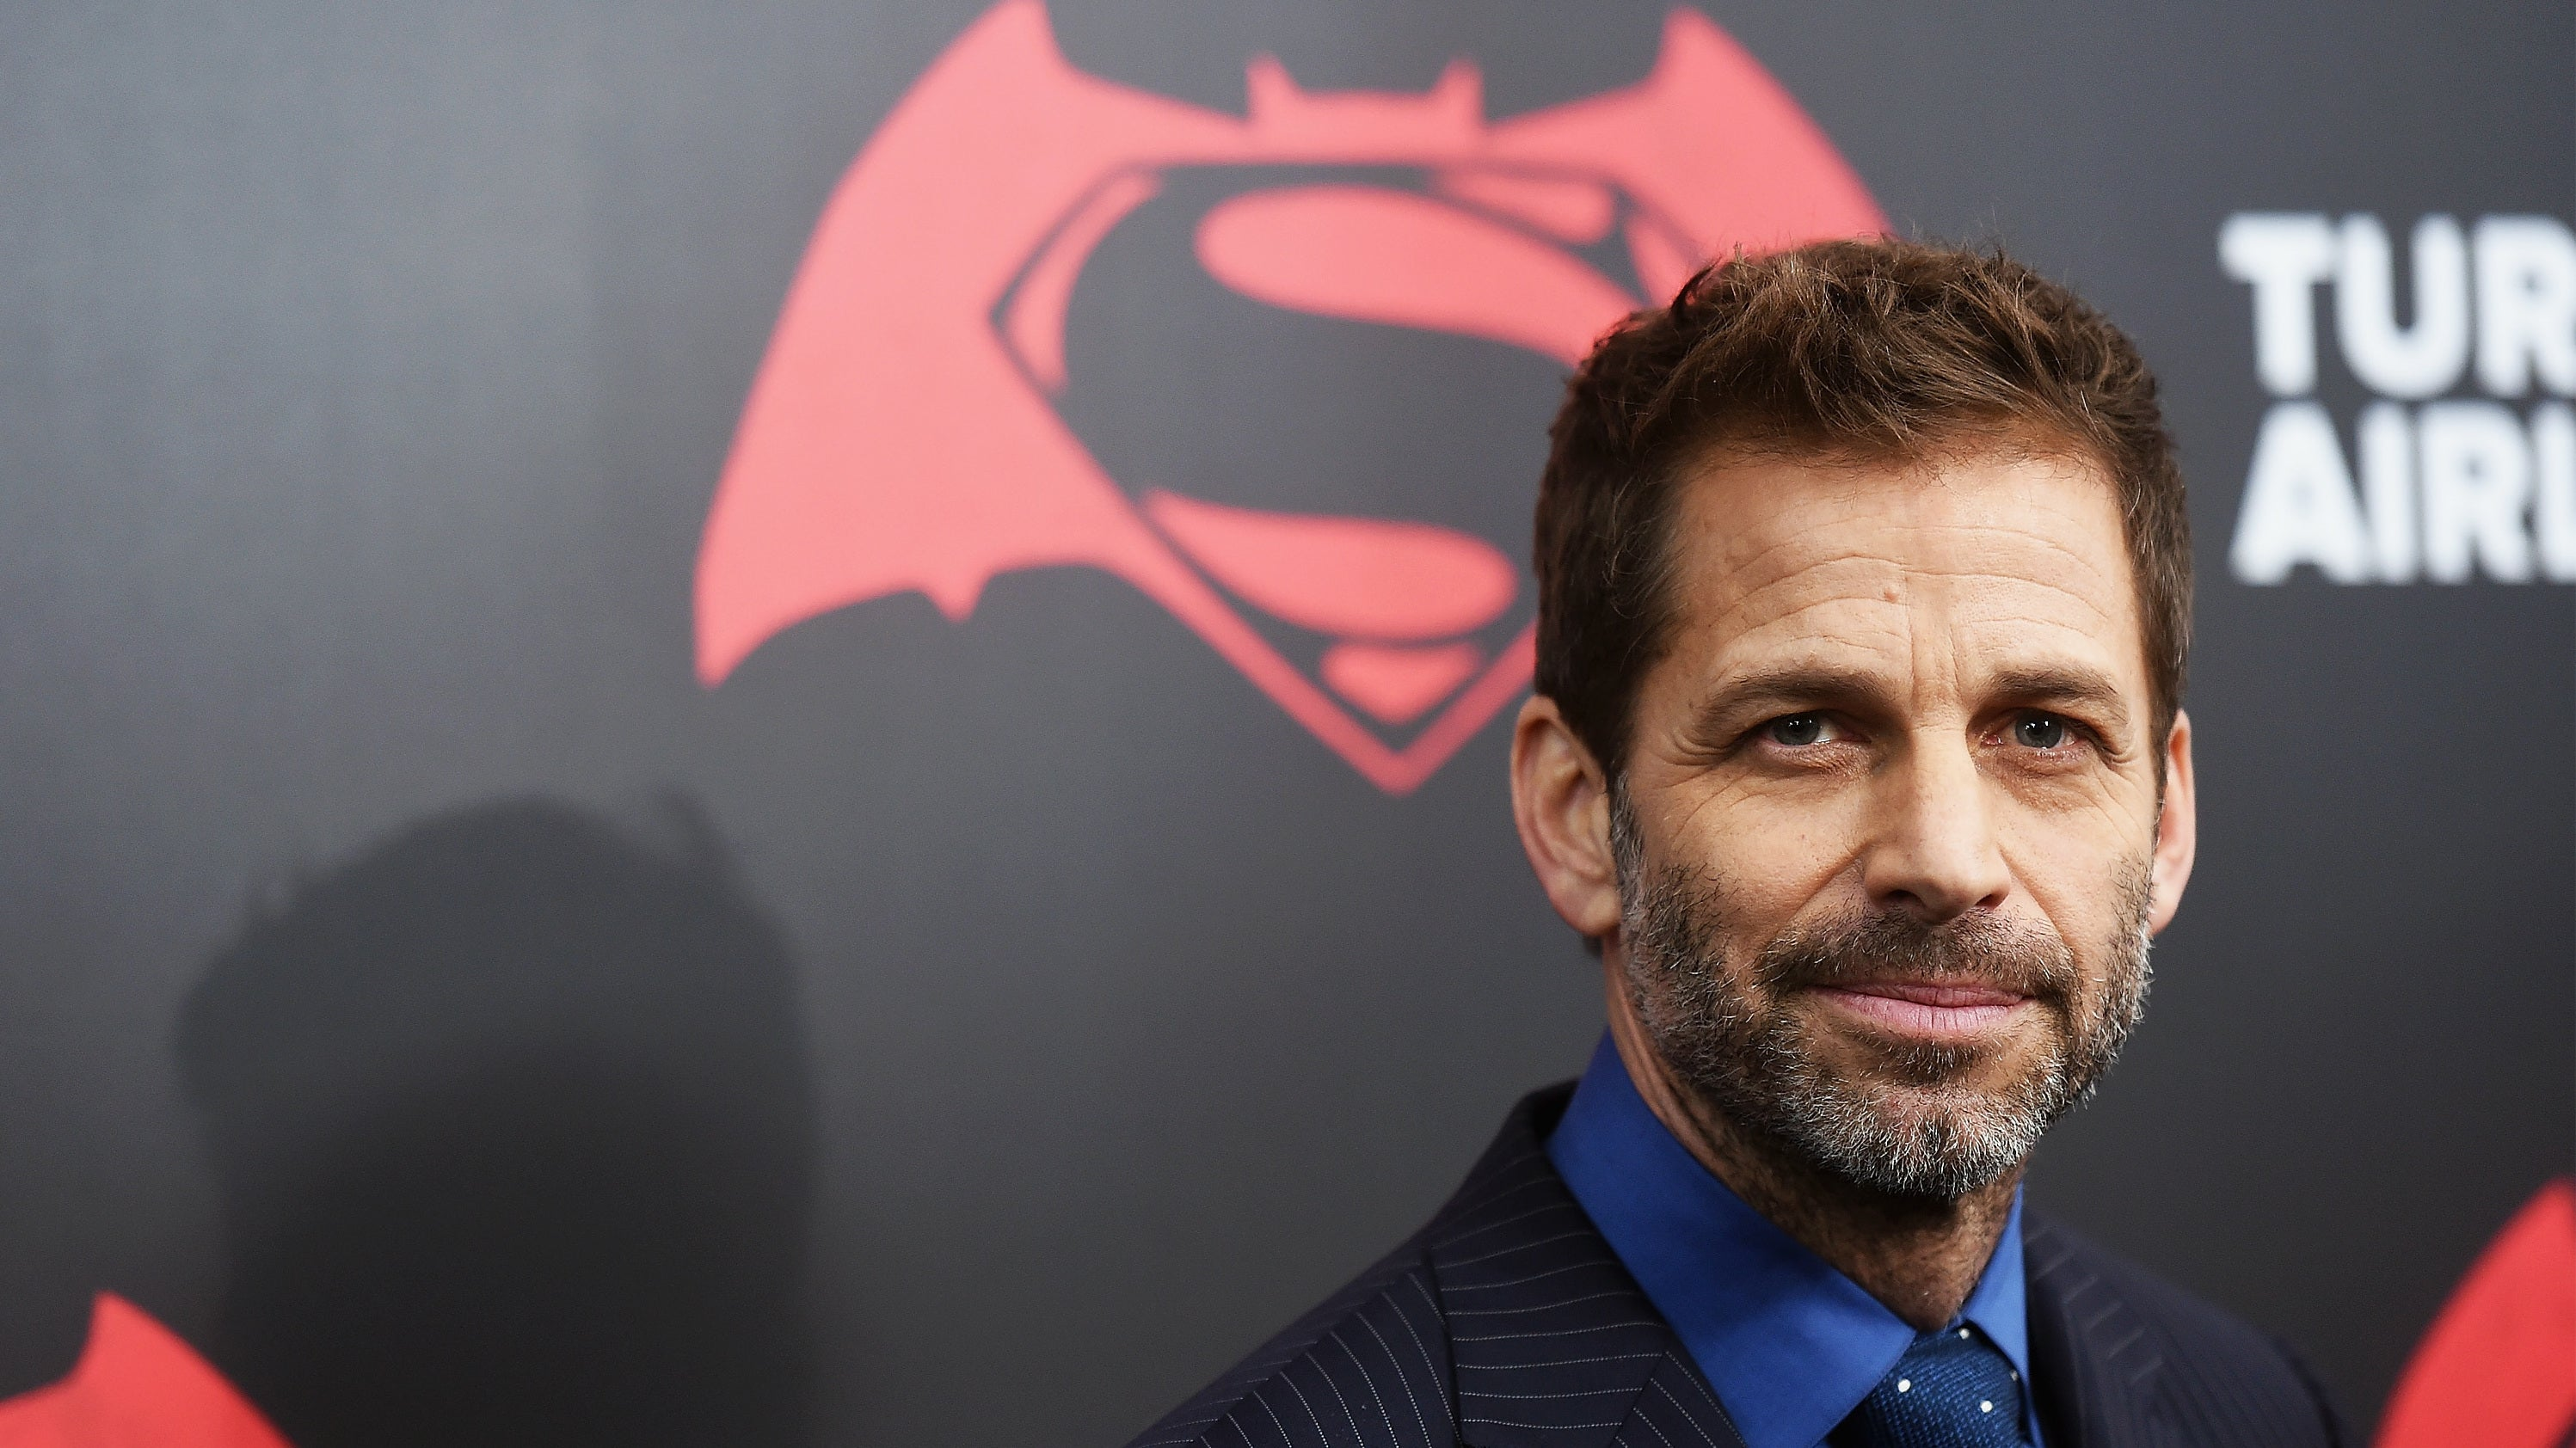 Zack Snyder's Next Movie Will Be An 'Epic And Crazy' Zombie Heist For Netflix